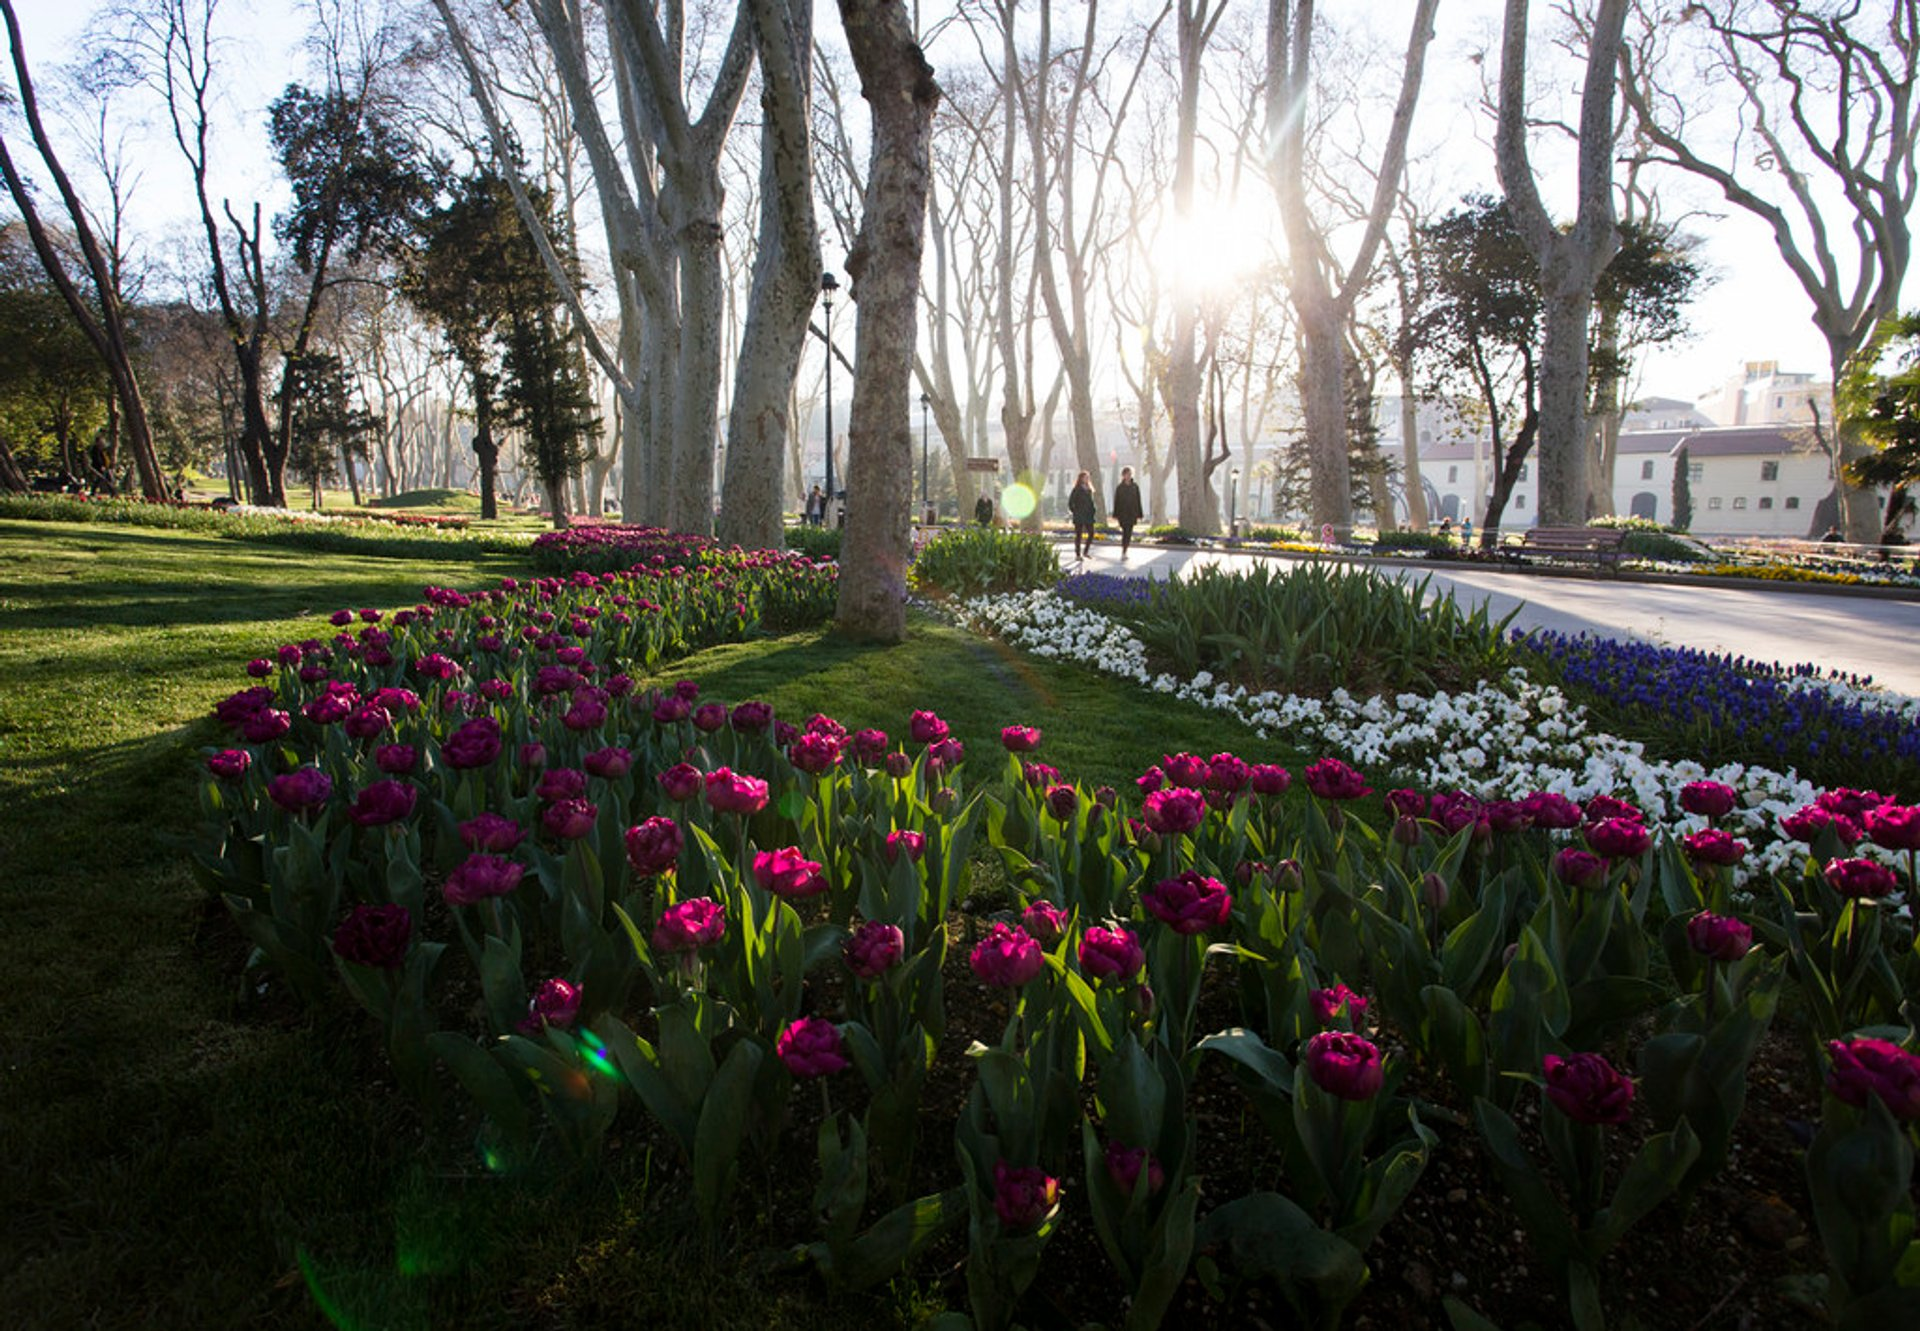 Tulips in Istanbul 2019 - Best Time